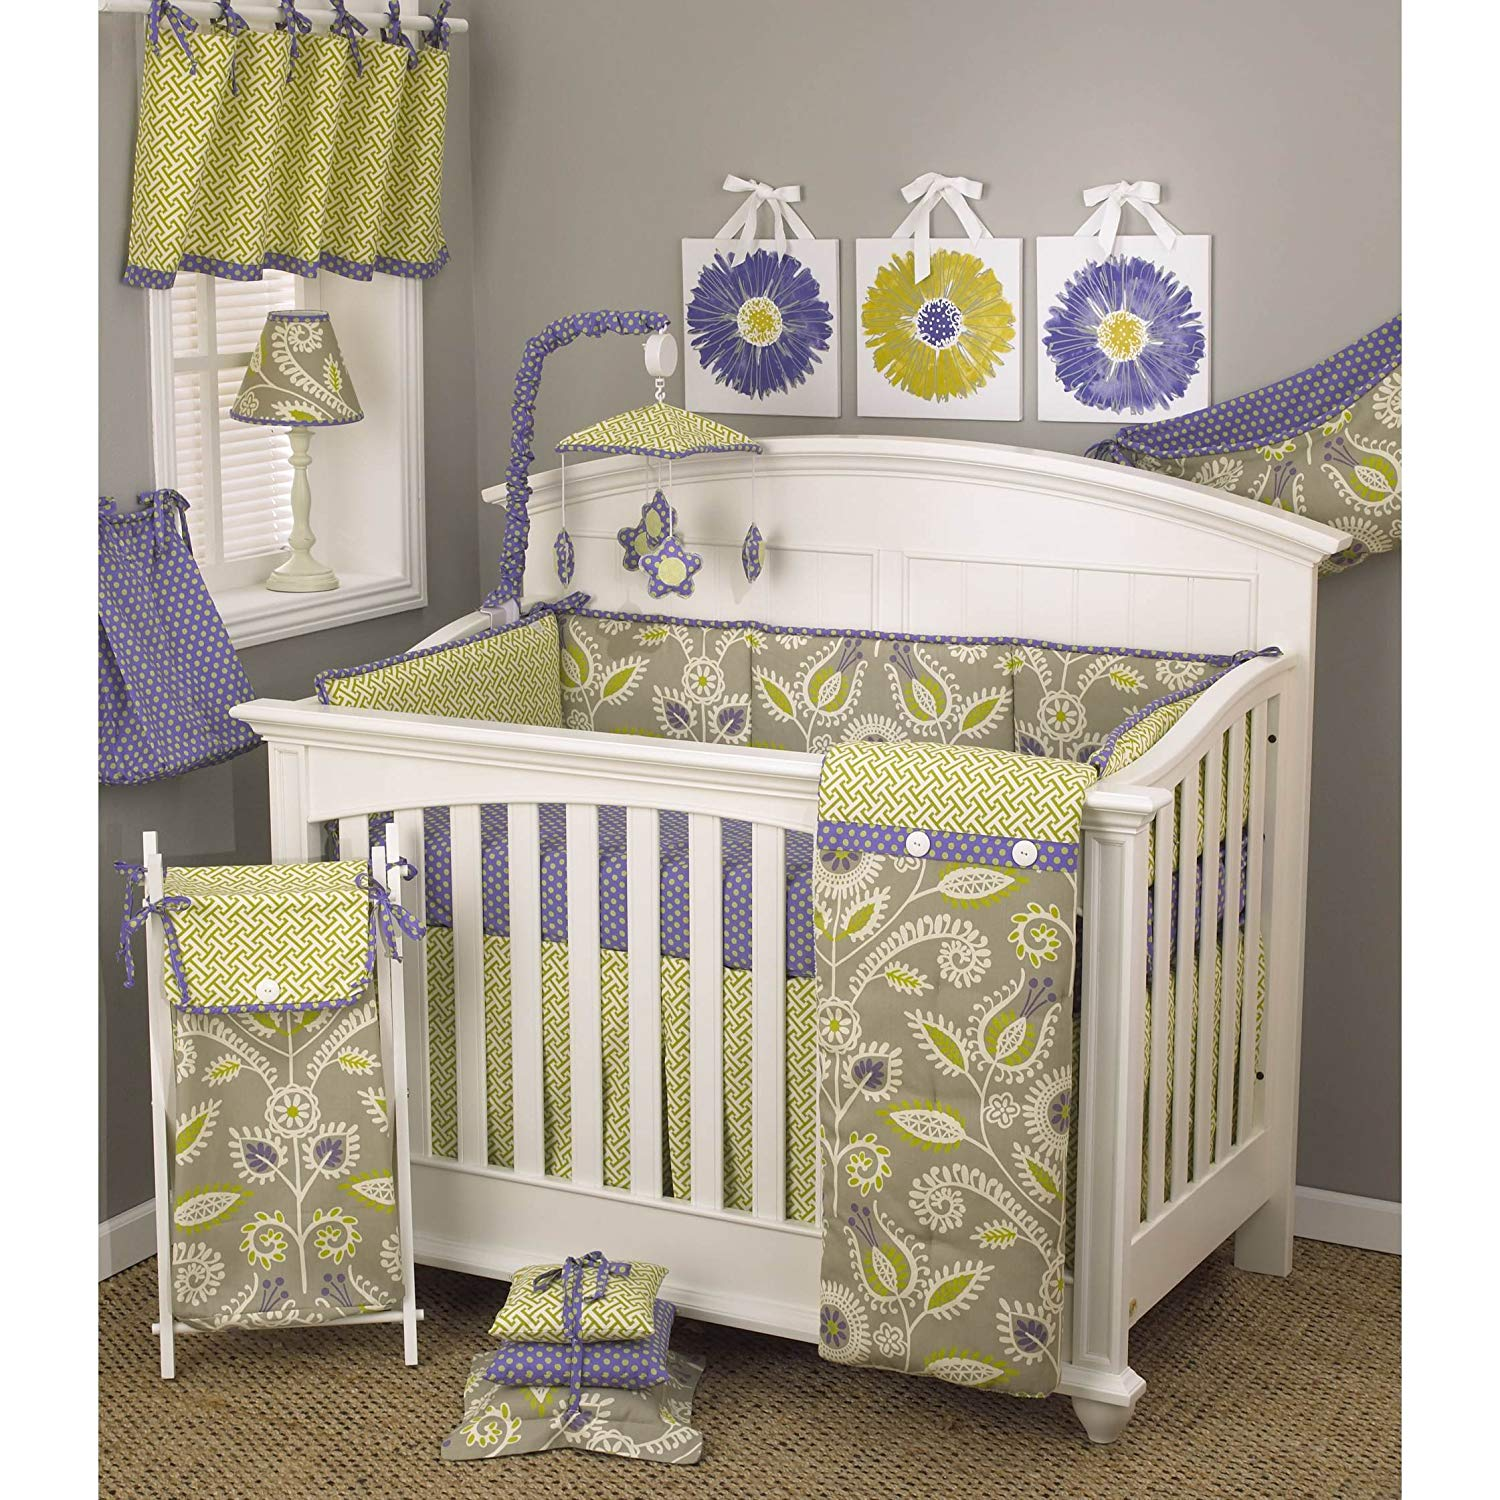 Buy 8 Piece Baby Girls Grey Purple Yellow Flower Crib Bedding Set Newborn Floral Themed Nursery Bed Set Infant Child Periwinkle Lattice Pattern Polka Dots Lime Green Adorable Blanket Comforter Cotton In